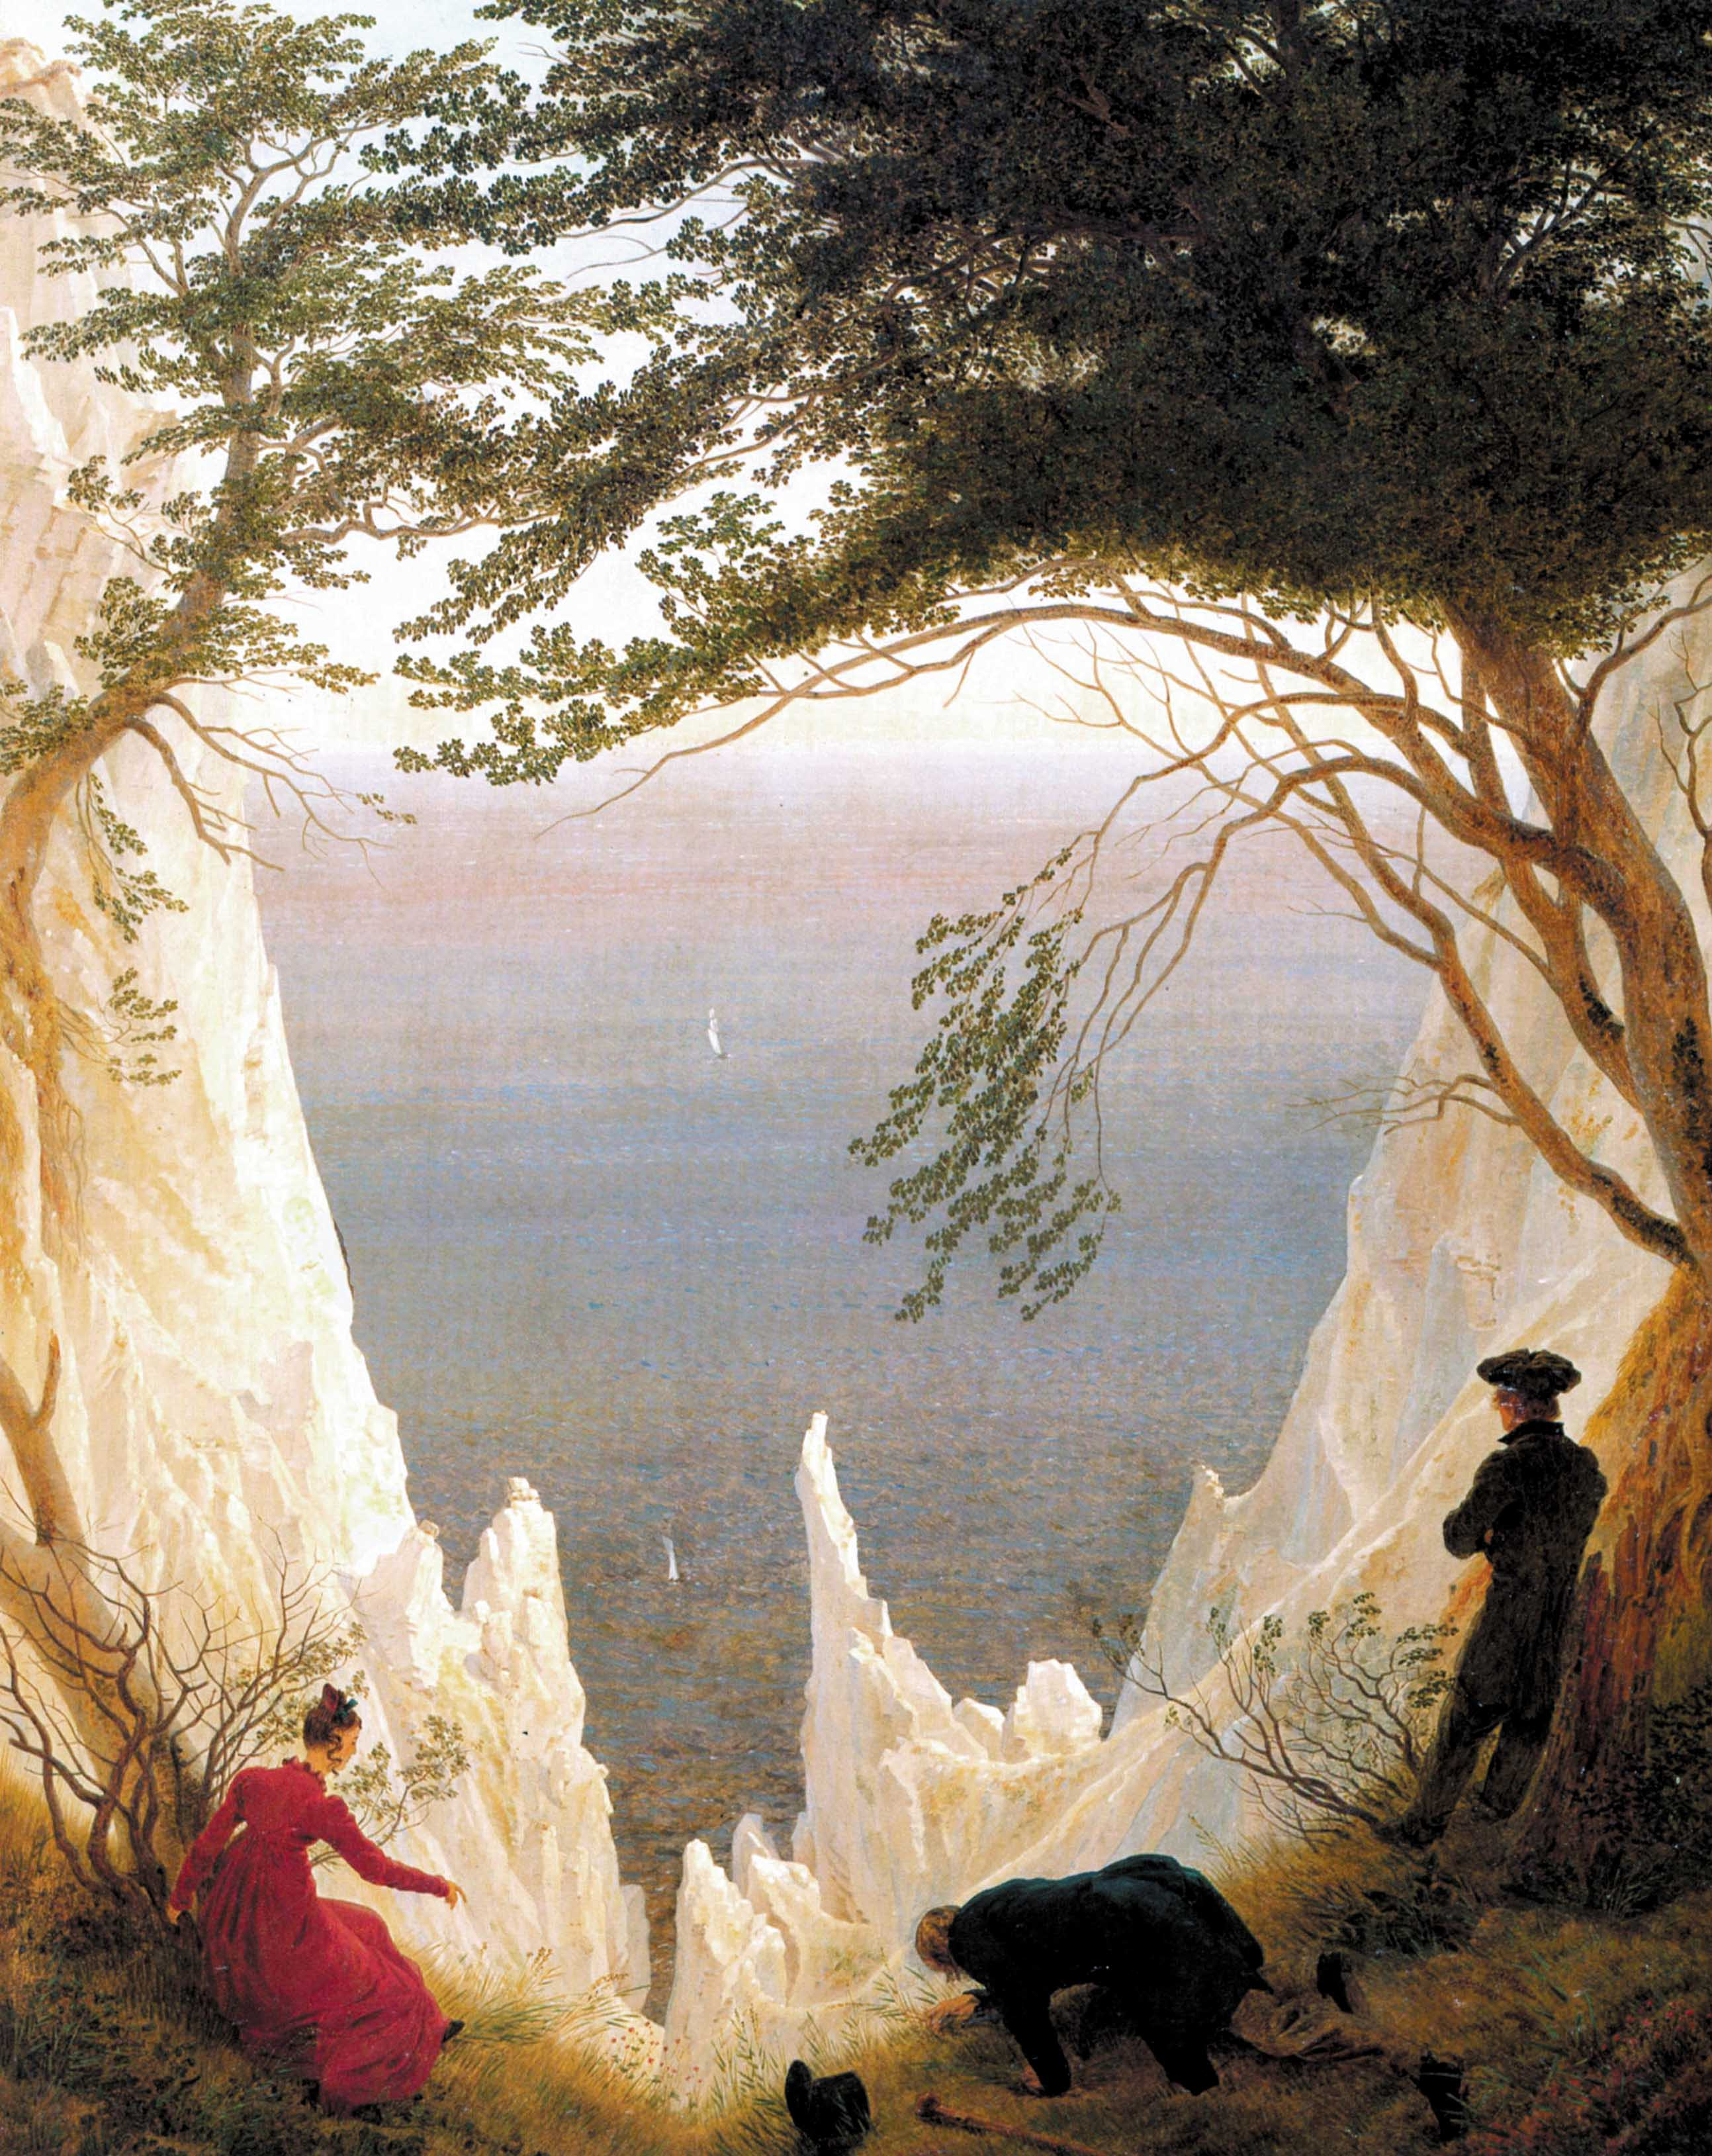 the emergence of american romanticism as an artistic movement in the 18th century Romanticism definition is - a literary, artistic, and philosophical movement originating in the 18th century, characterized chiefly by a reaction against neoclassicism and an emphasis on the imagination and emotions, and marked especially in english literature by sensibility and the use of autobiographical material, an exaltation of the.